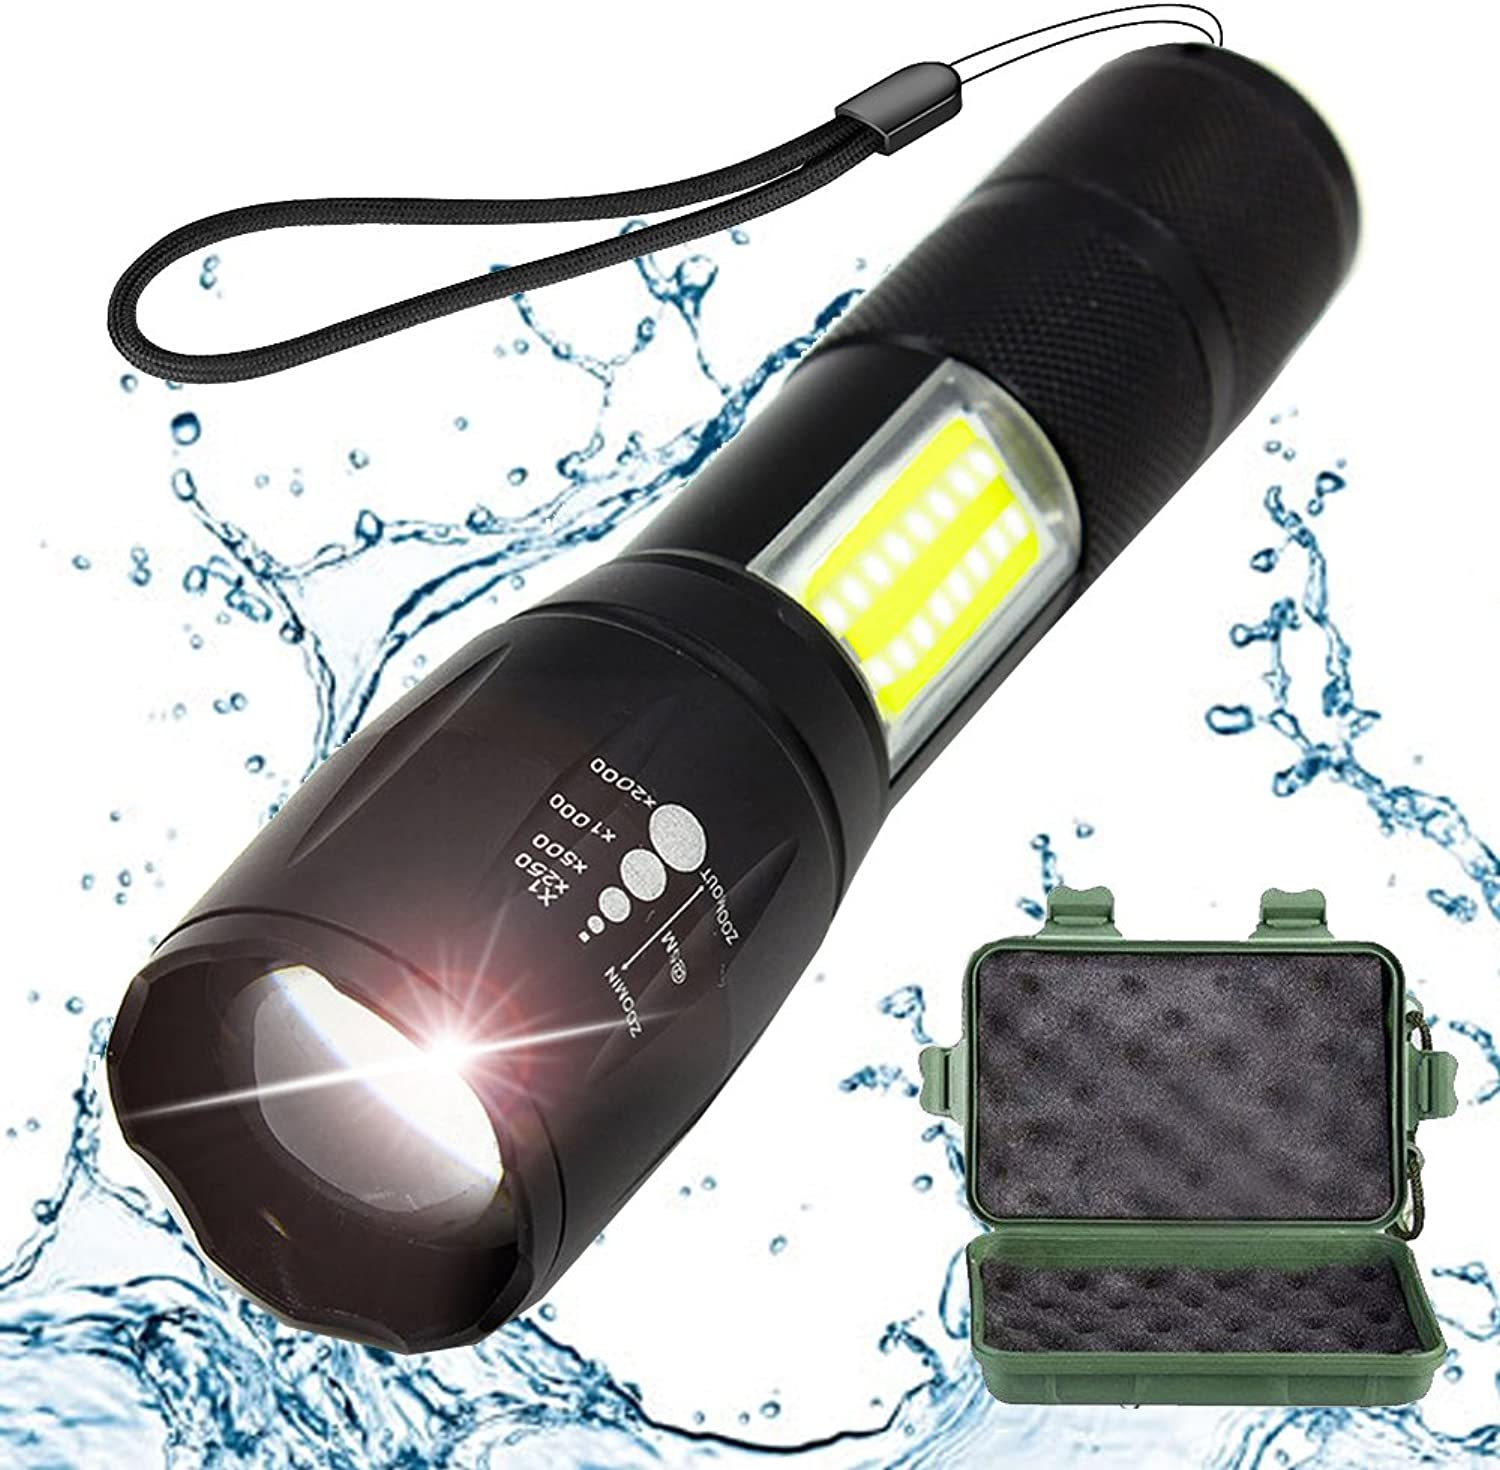 Tactical Flashlight with COB Light - Portable, Zoomable, Water & Shock Resistant, LED TAC Light with 4 Modes 1000 Lumens - Super Bright Torch for Outdoors, Home and Emergency